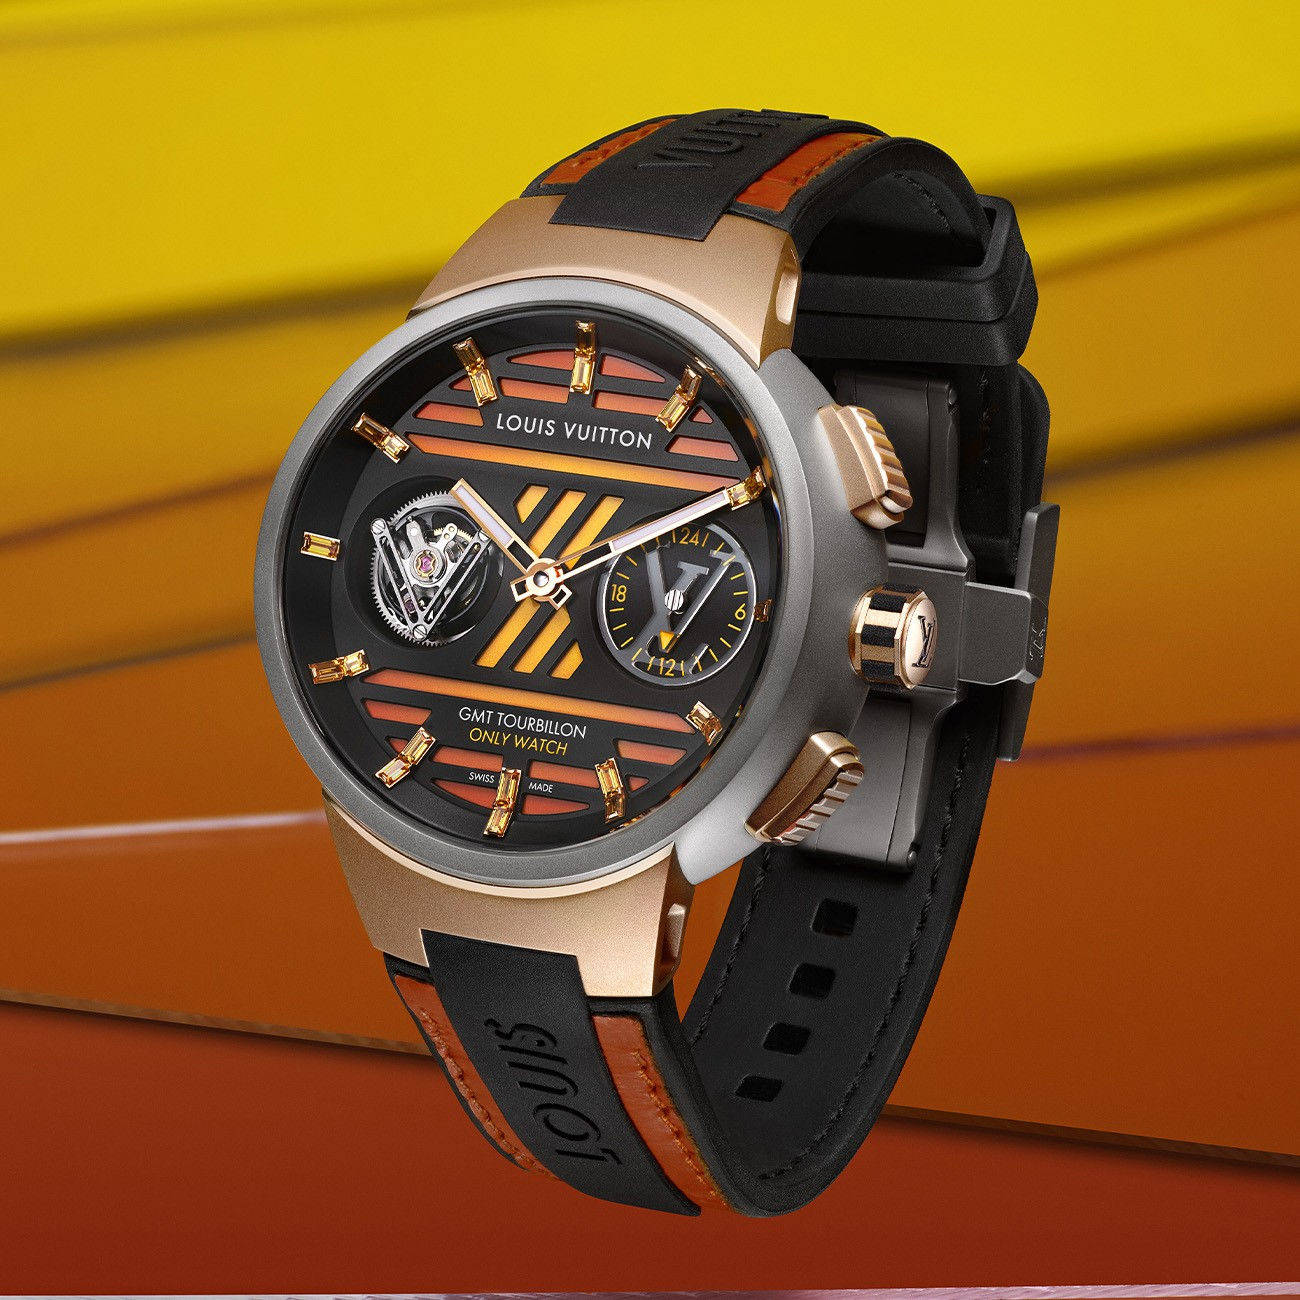 Louis Vuitton only watch 2021